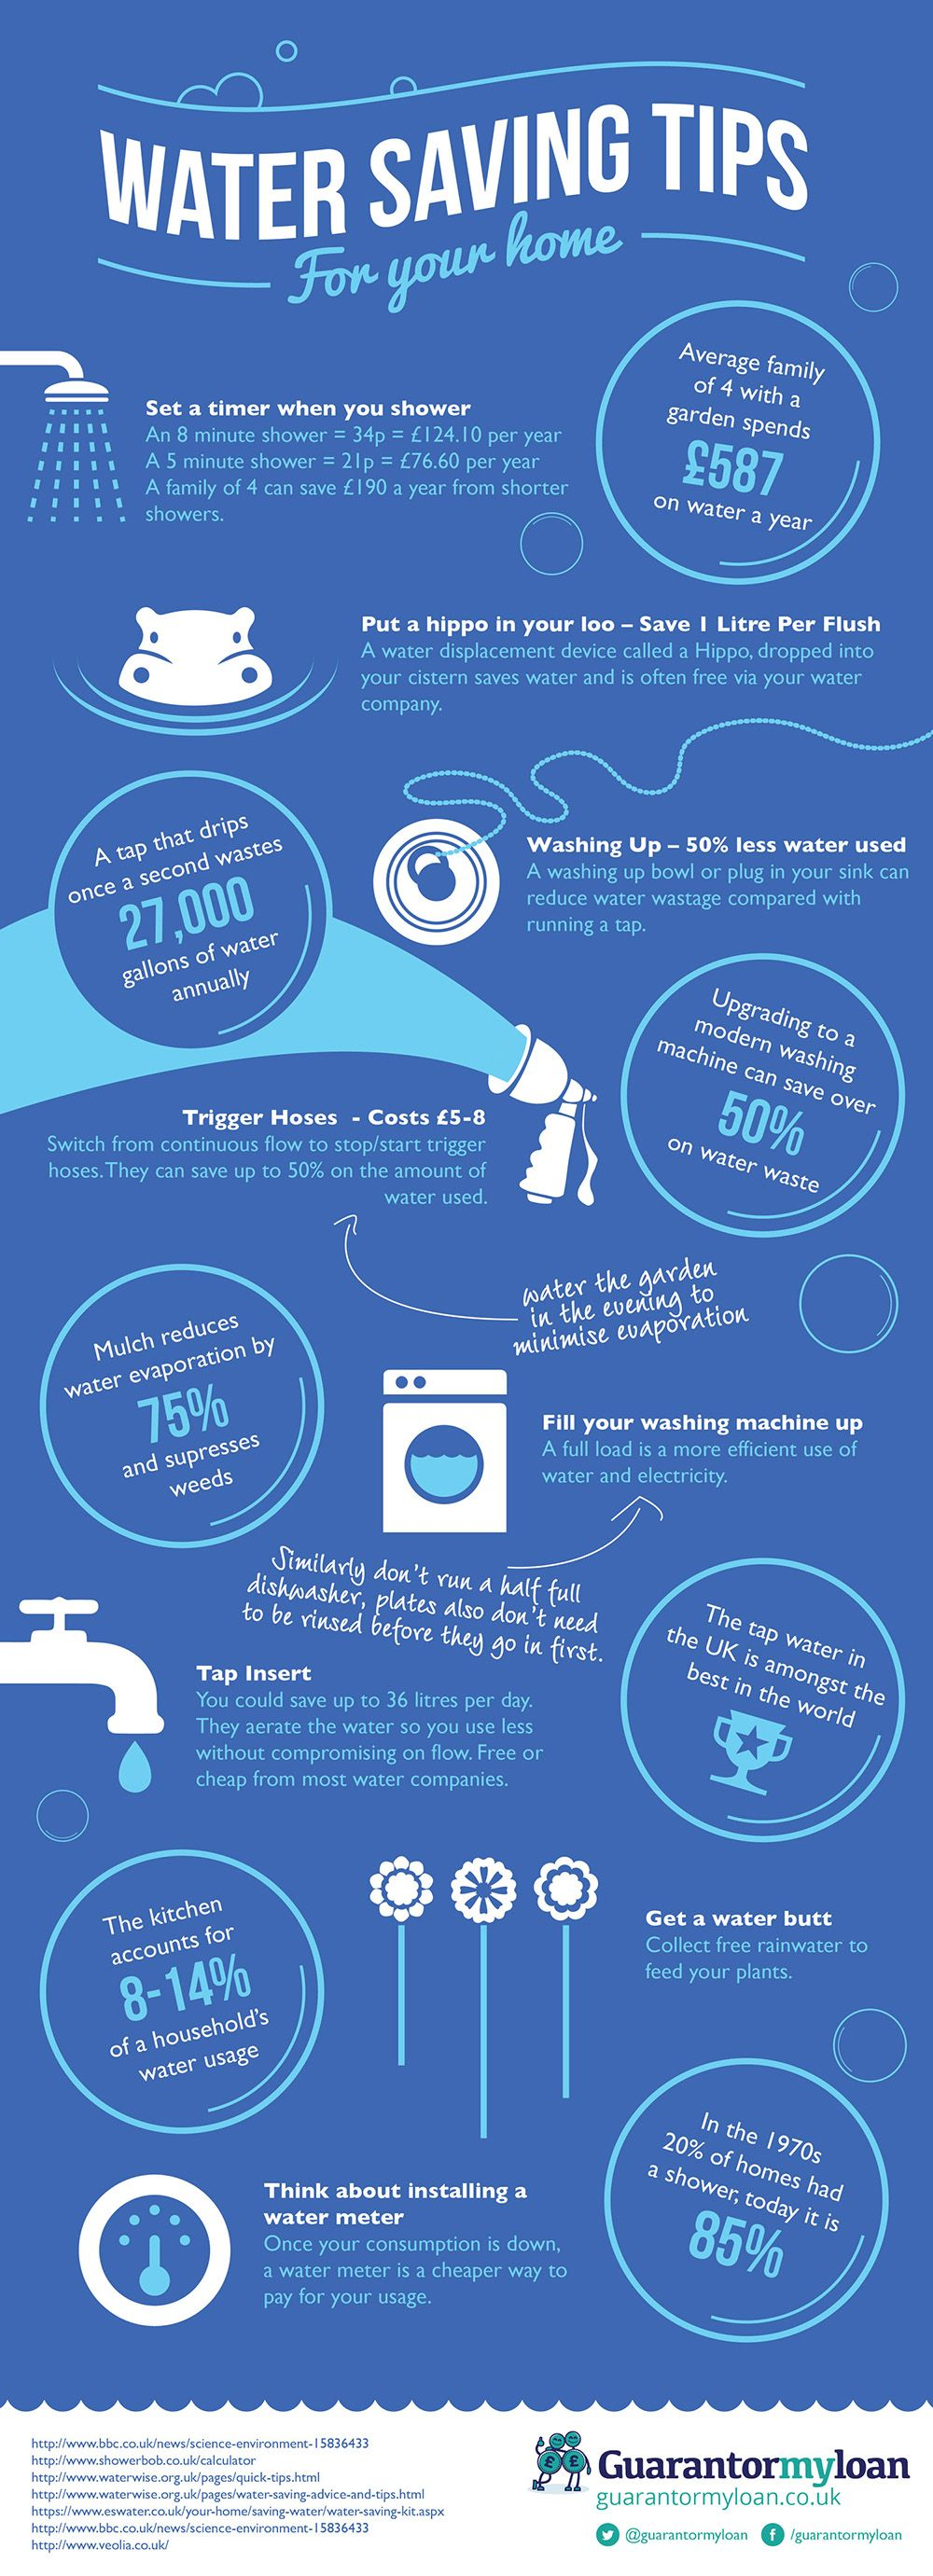 Water Saving Tips For The Home Nfographic Water Saving